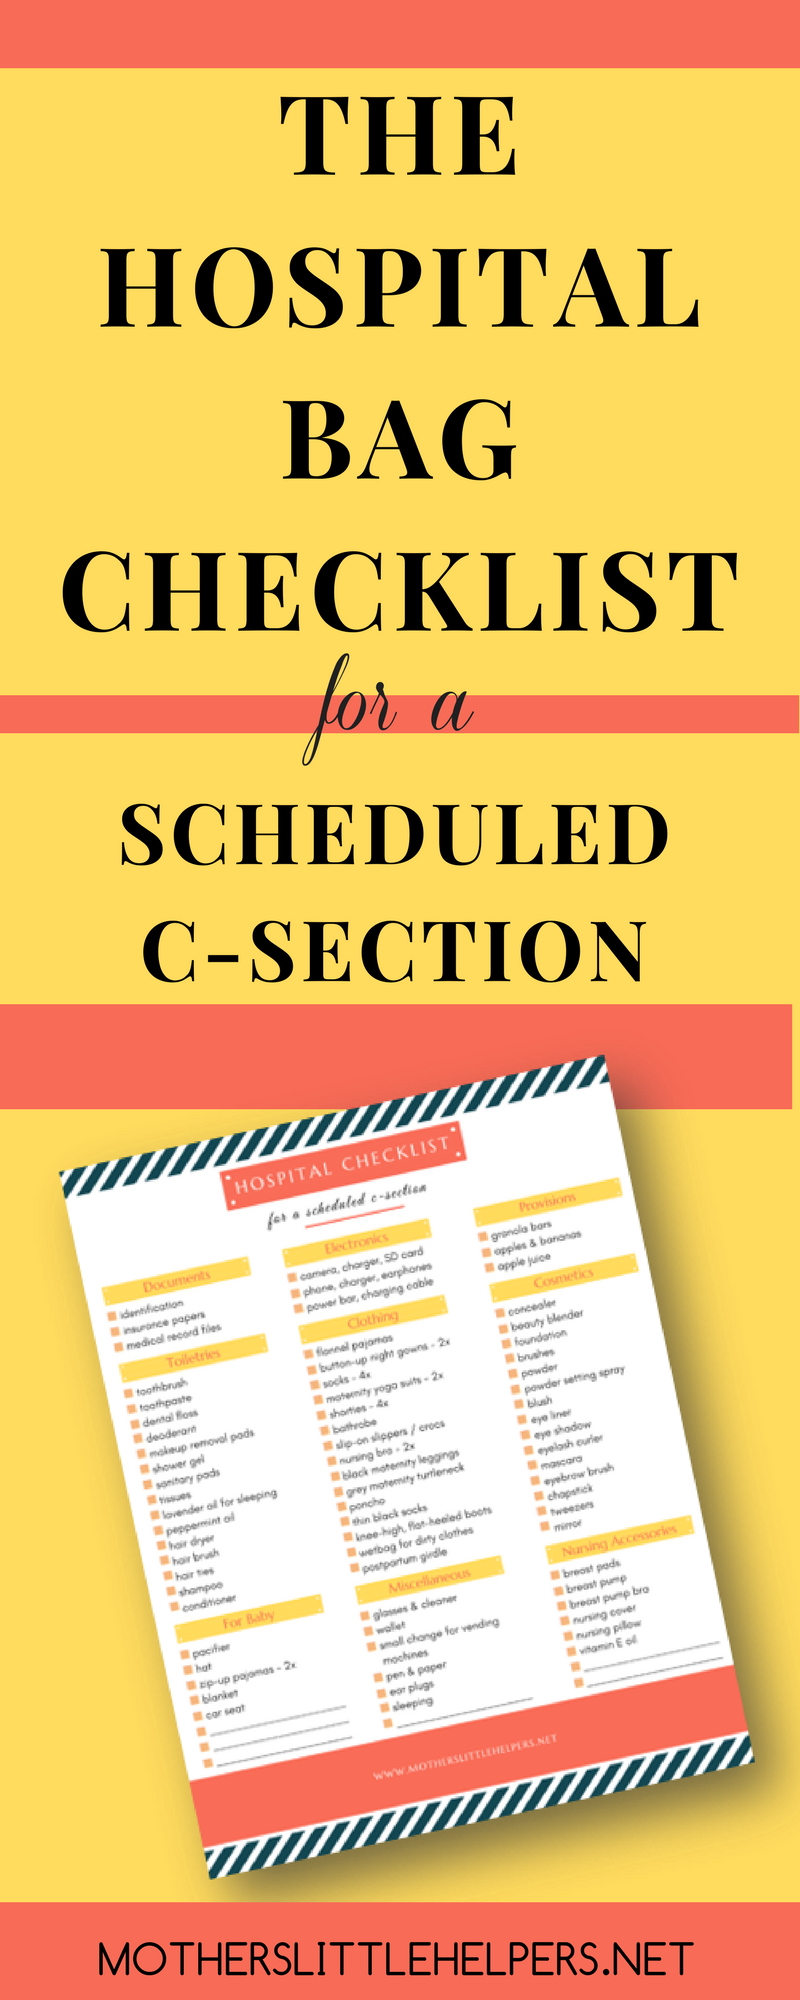 Are you having a scheduled c-section and aren't sure what you'll be needing after the operation? Check out my FREE Hospital Bag Checklist and get extra tips & ideas for your hospital stay!